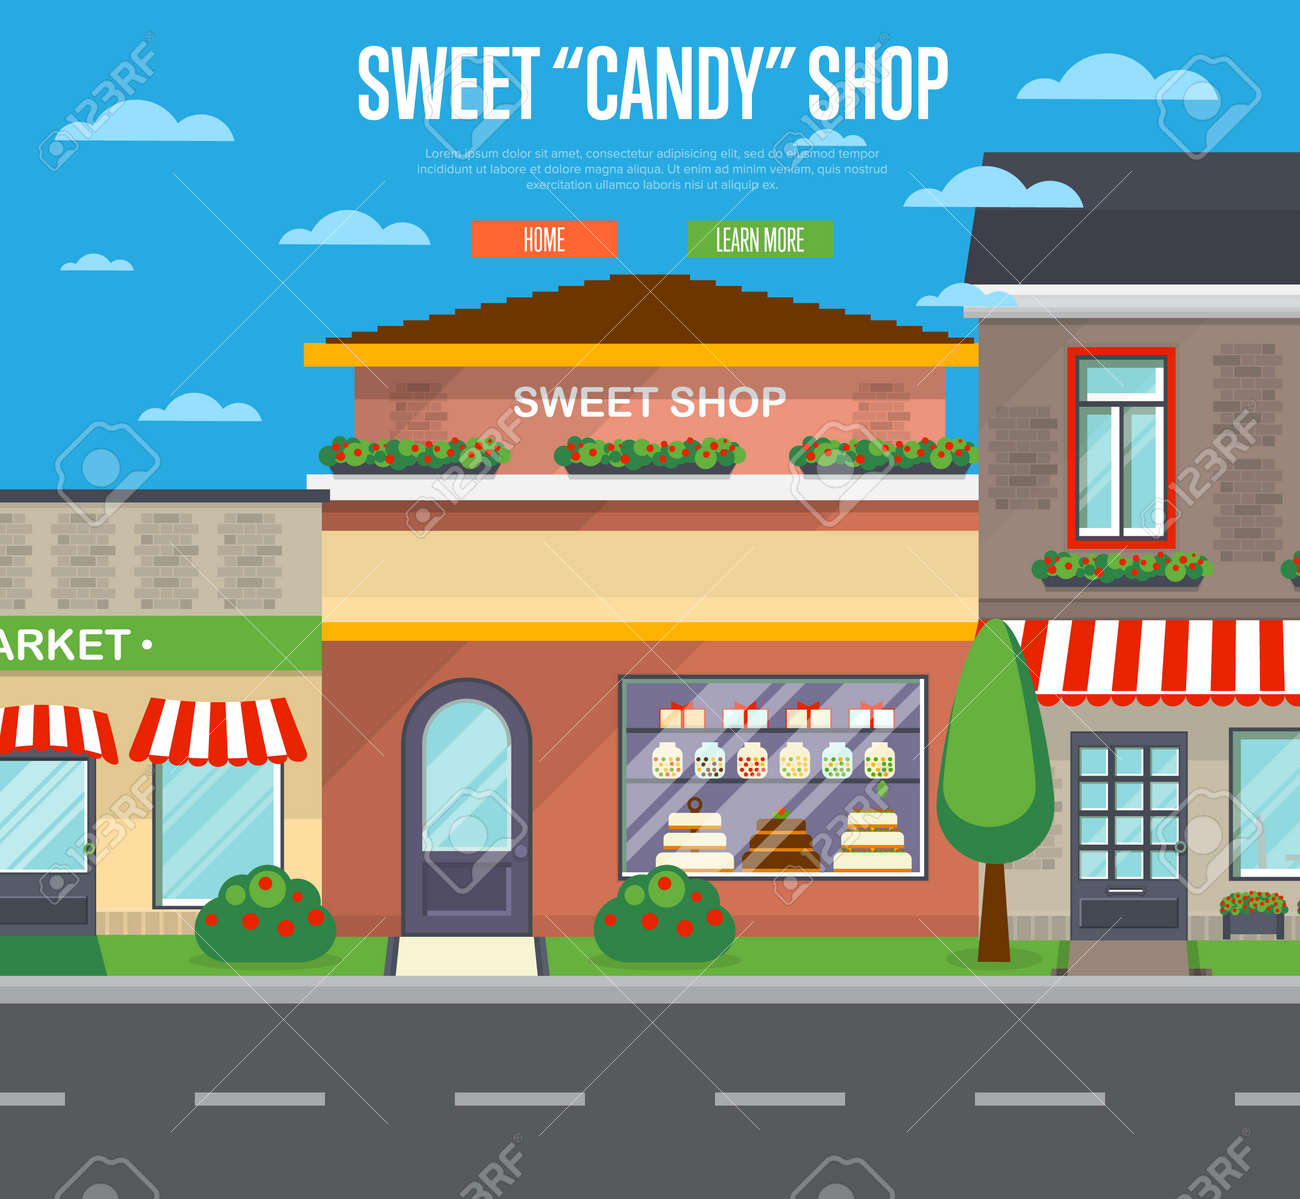 Sweet candy shop banner in flat design - 75943080